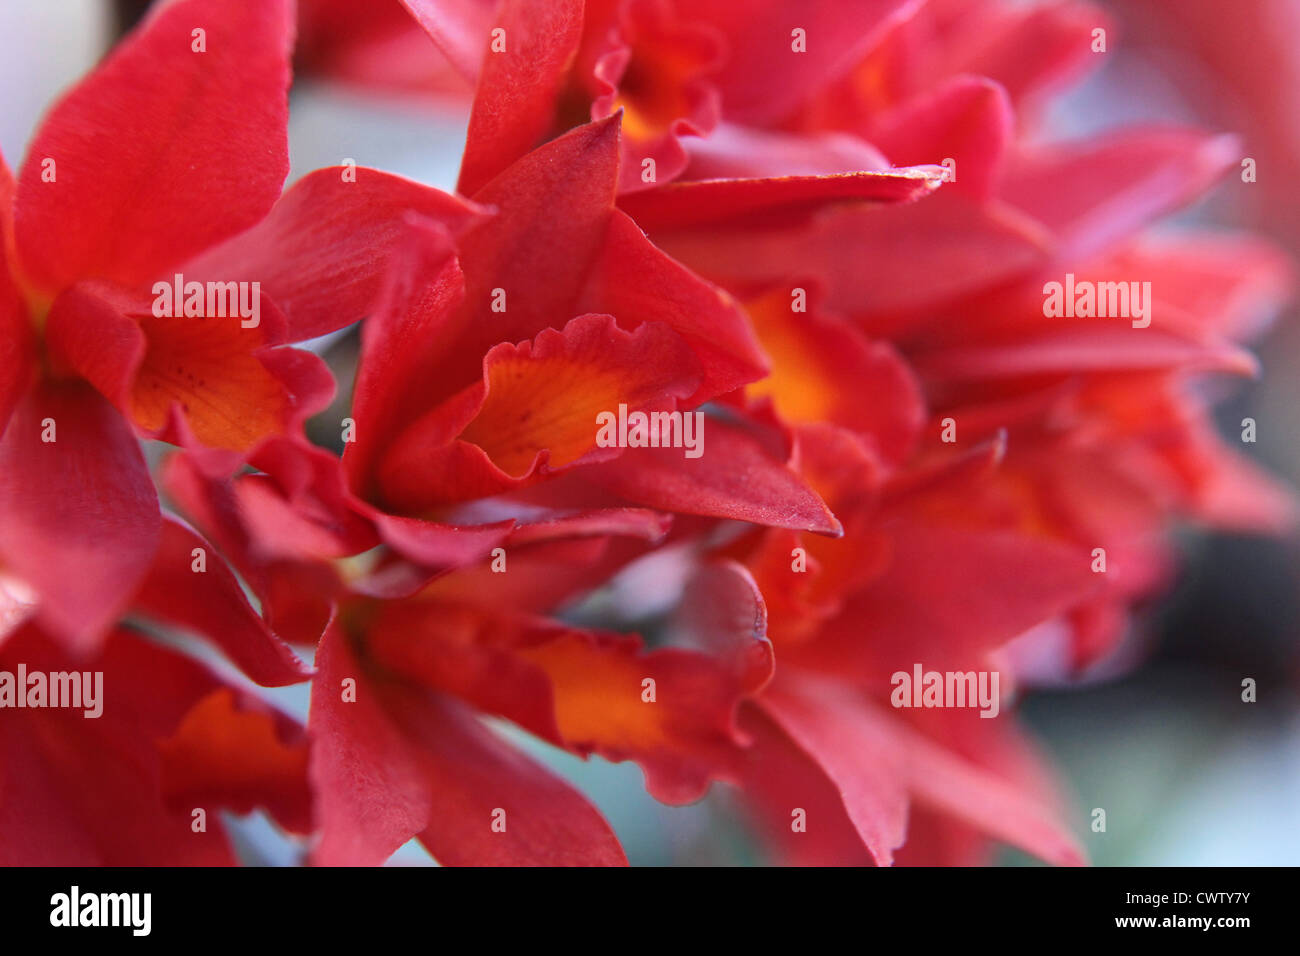 Red flower blossoms, close-up - Stock Image